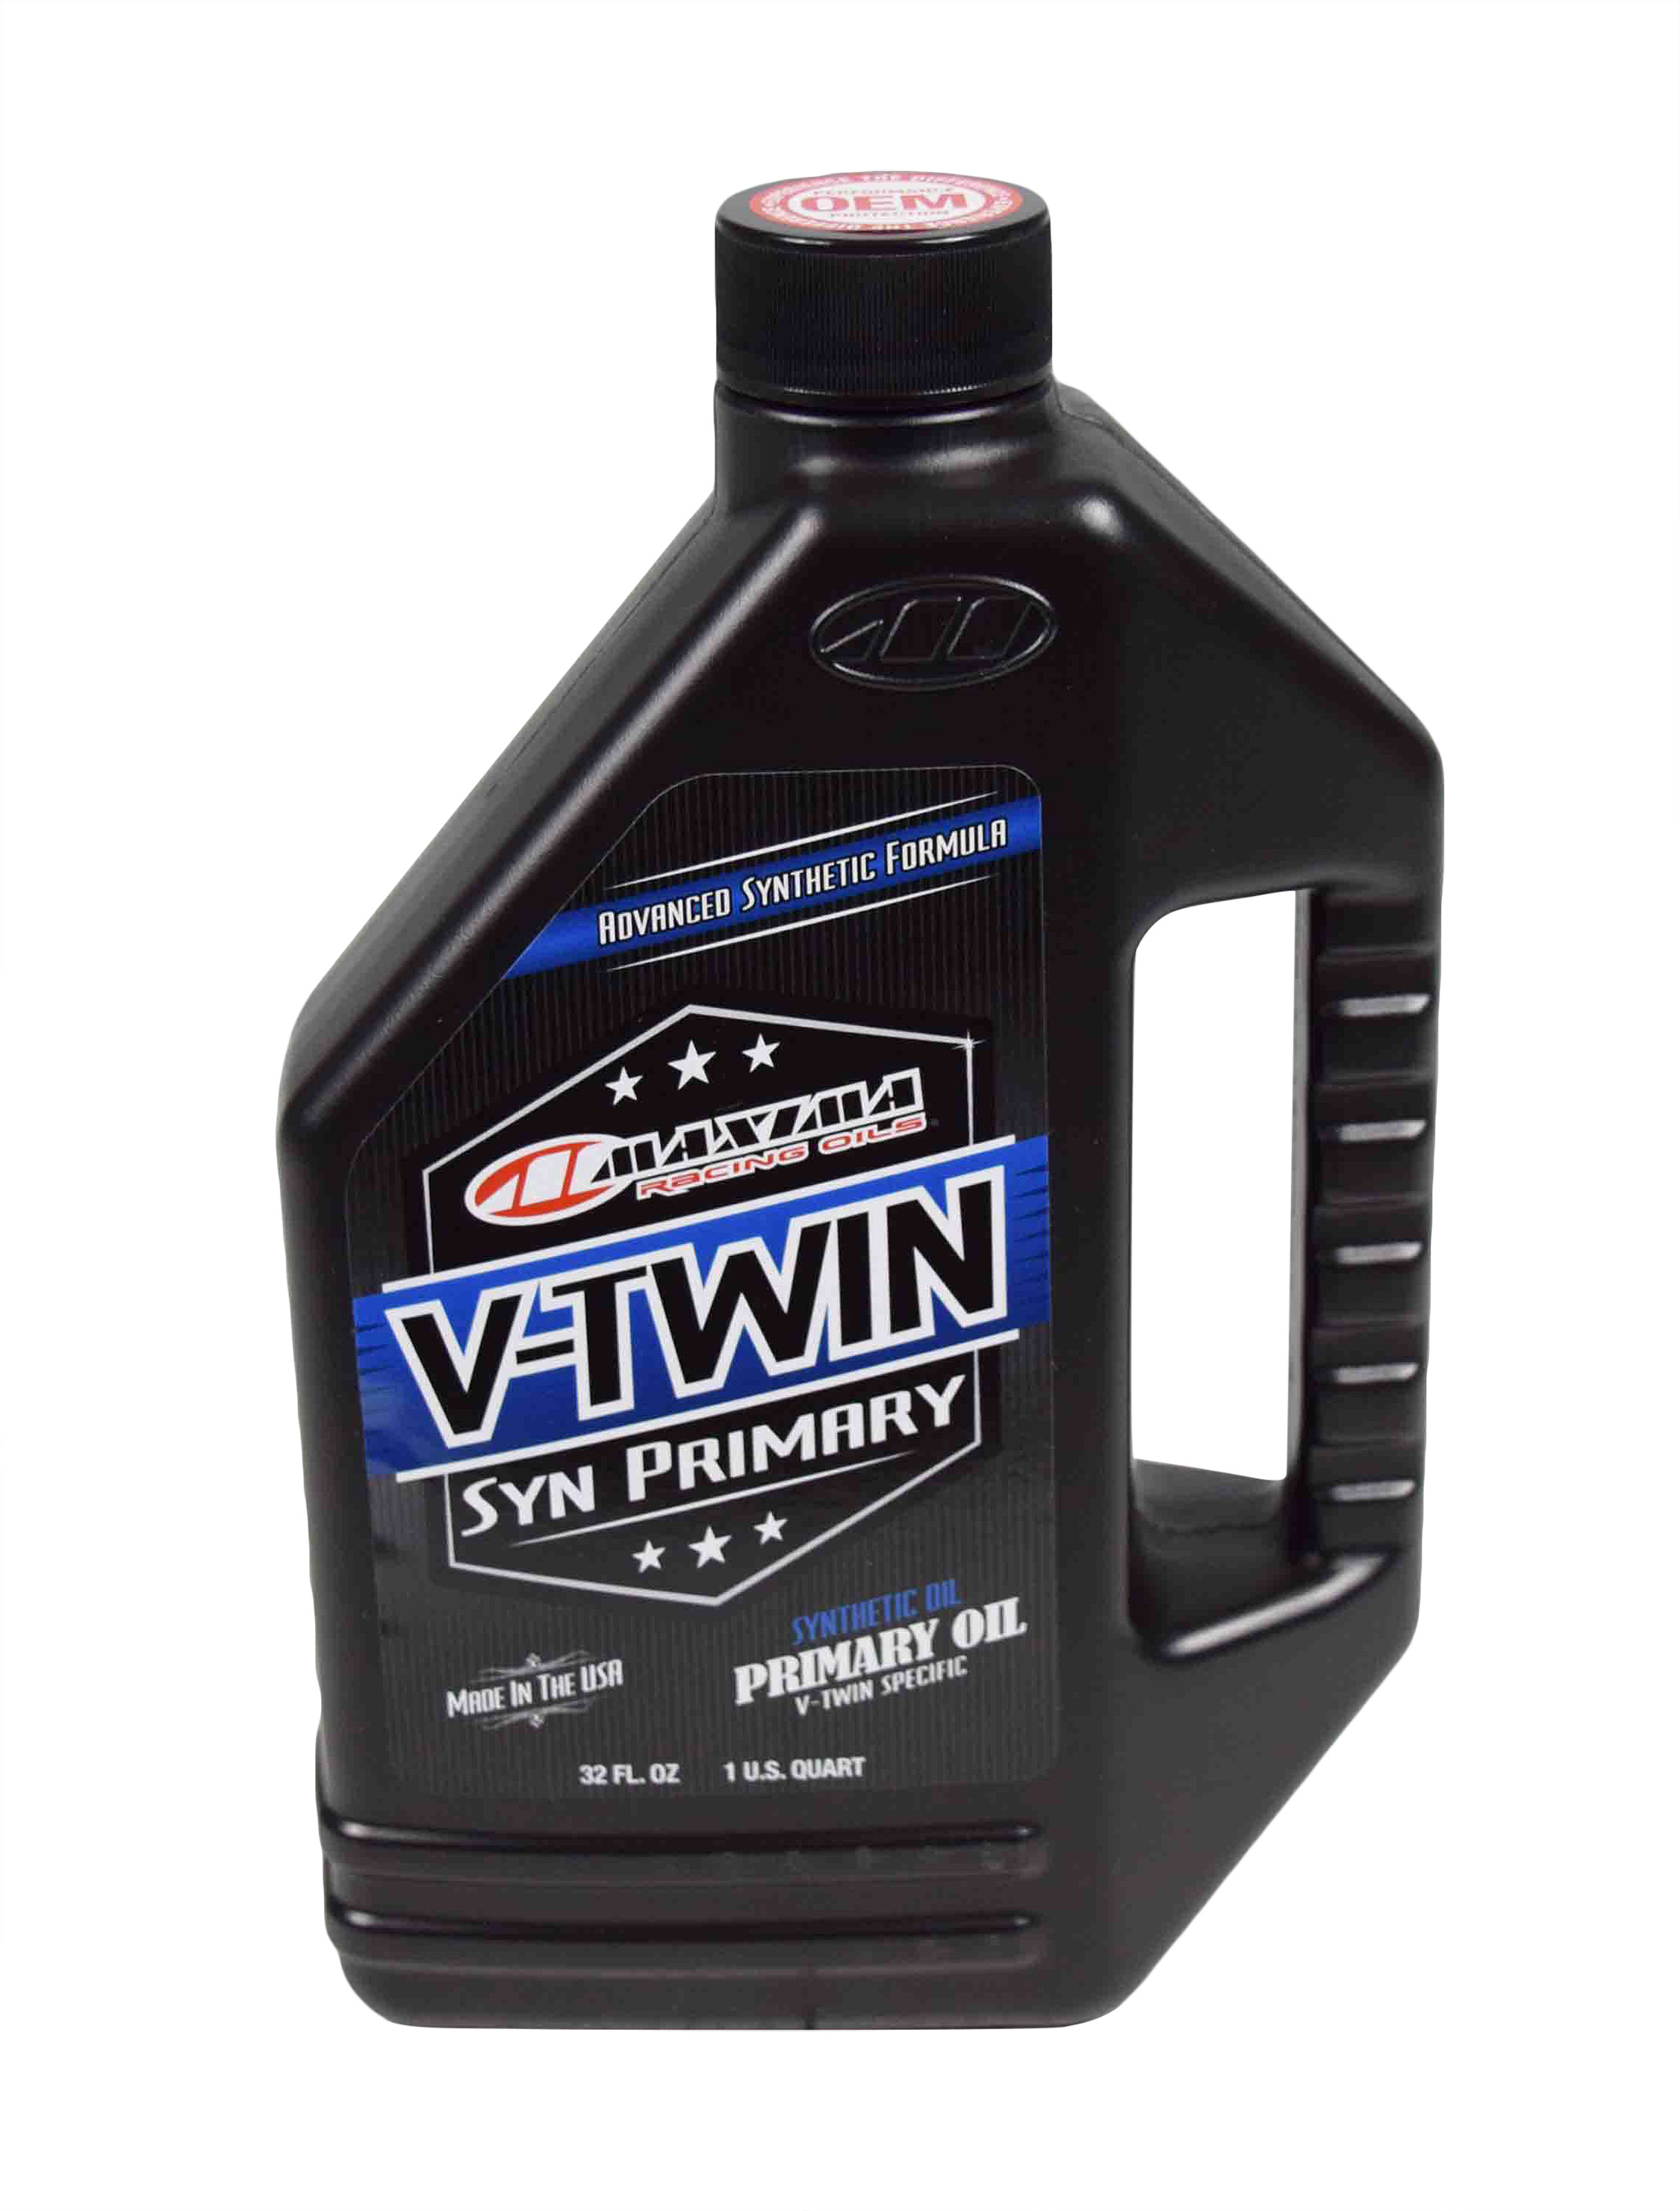 Maxima-40-05901-1-quart-V-Twin-Synthetic-Primary-Oil-32-fl.-oz-1-Pack-image-1